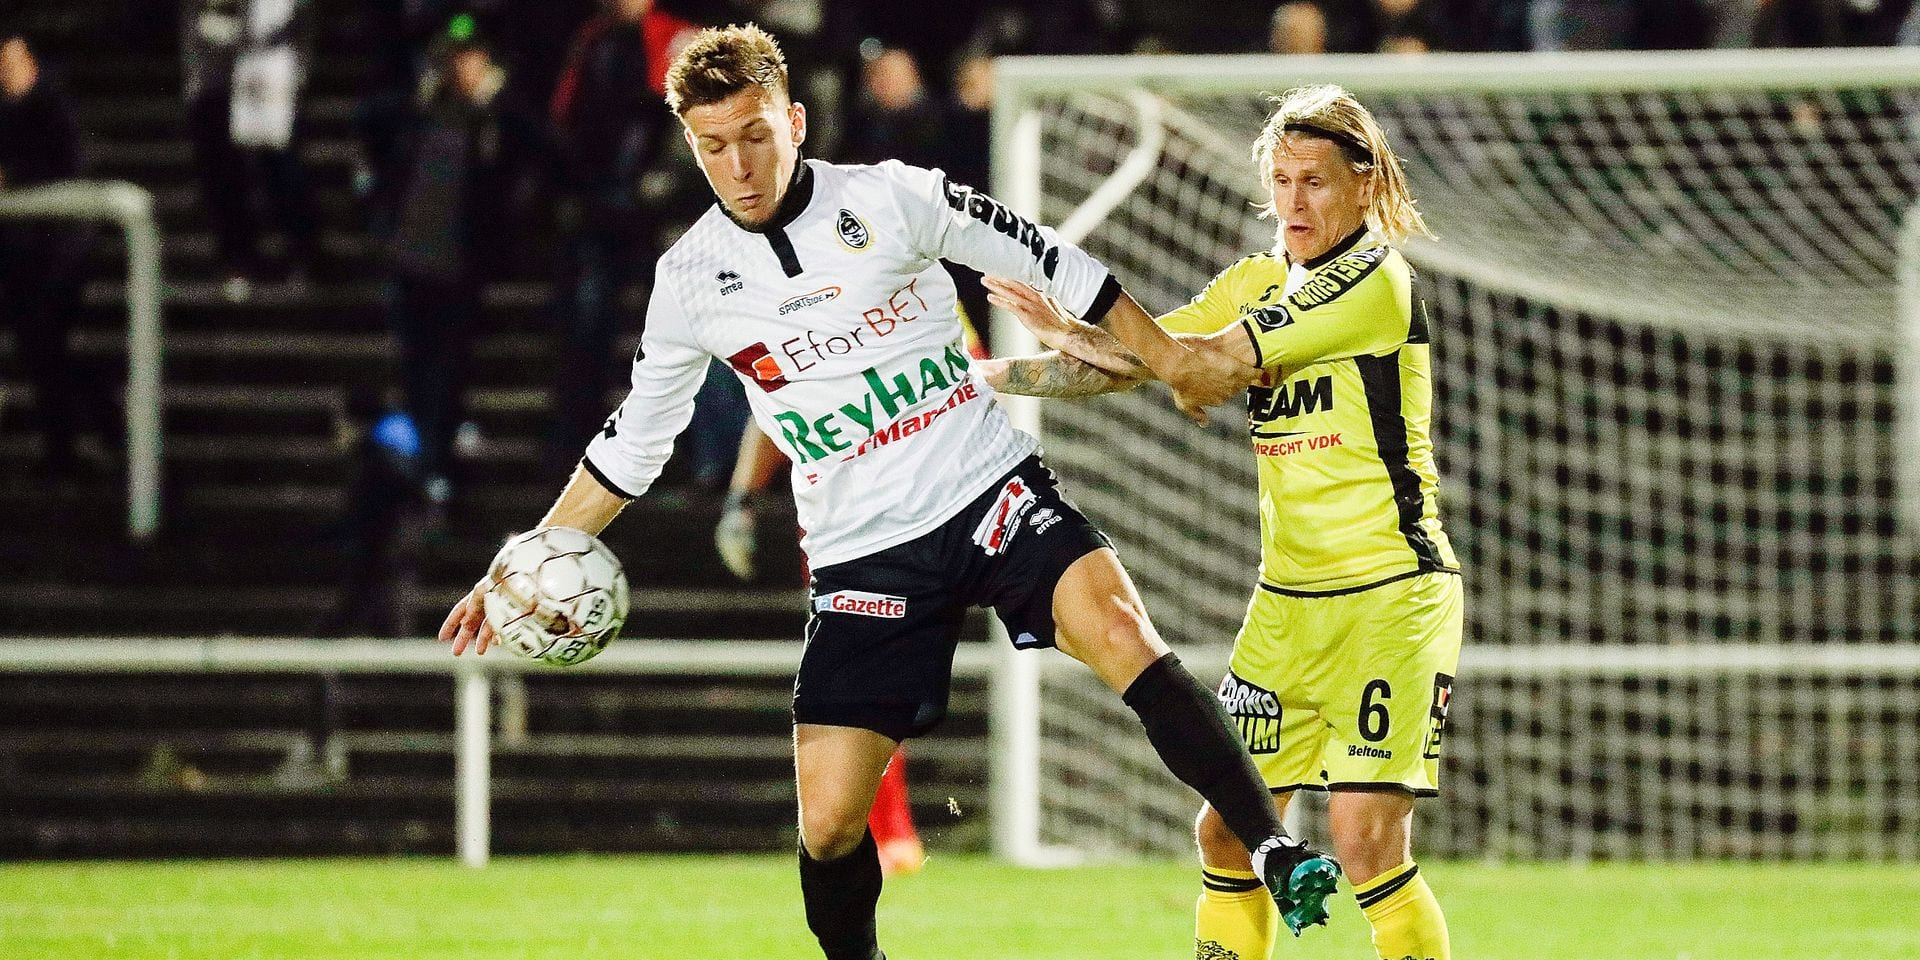 Charleroi's Jordan Henri and Lokeren's Ari Freyr Skulason pictured in action during a soccer game between Olympique Charleroi (Second amateur division) and Sporting Lokeren (JPL, D1), Wednesday 26 September 2018 in Charleroi, in the 1/16th final of the 'Croky Cup' Belgian cup. BELGA PHOTO THIERRY ROGE